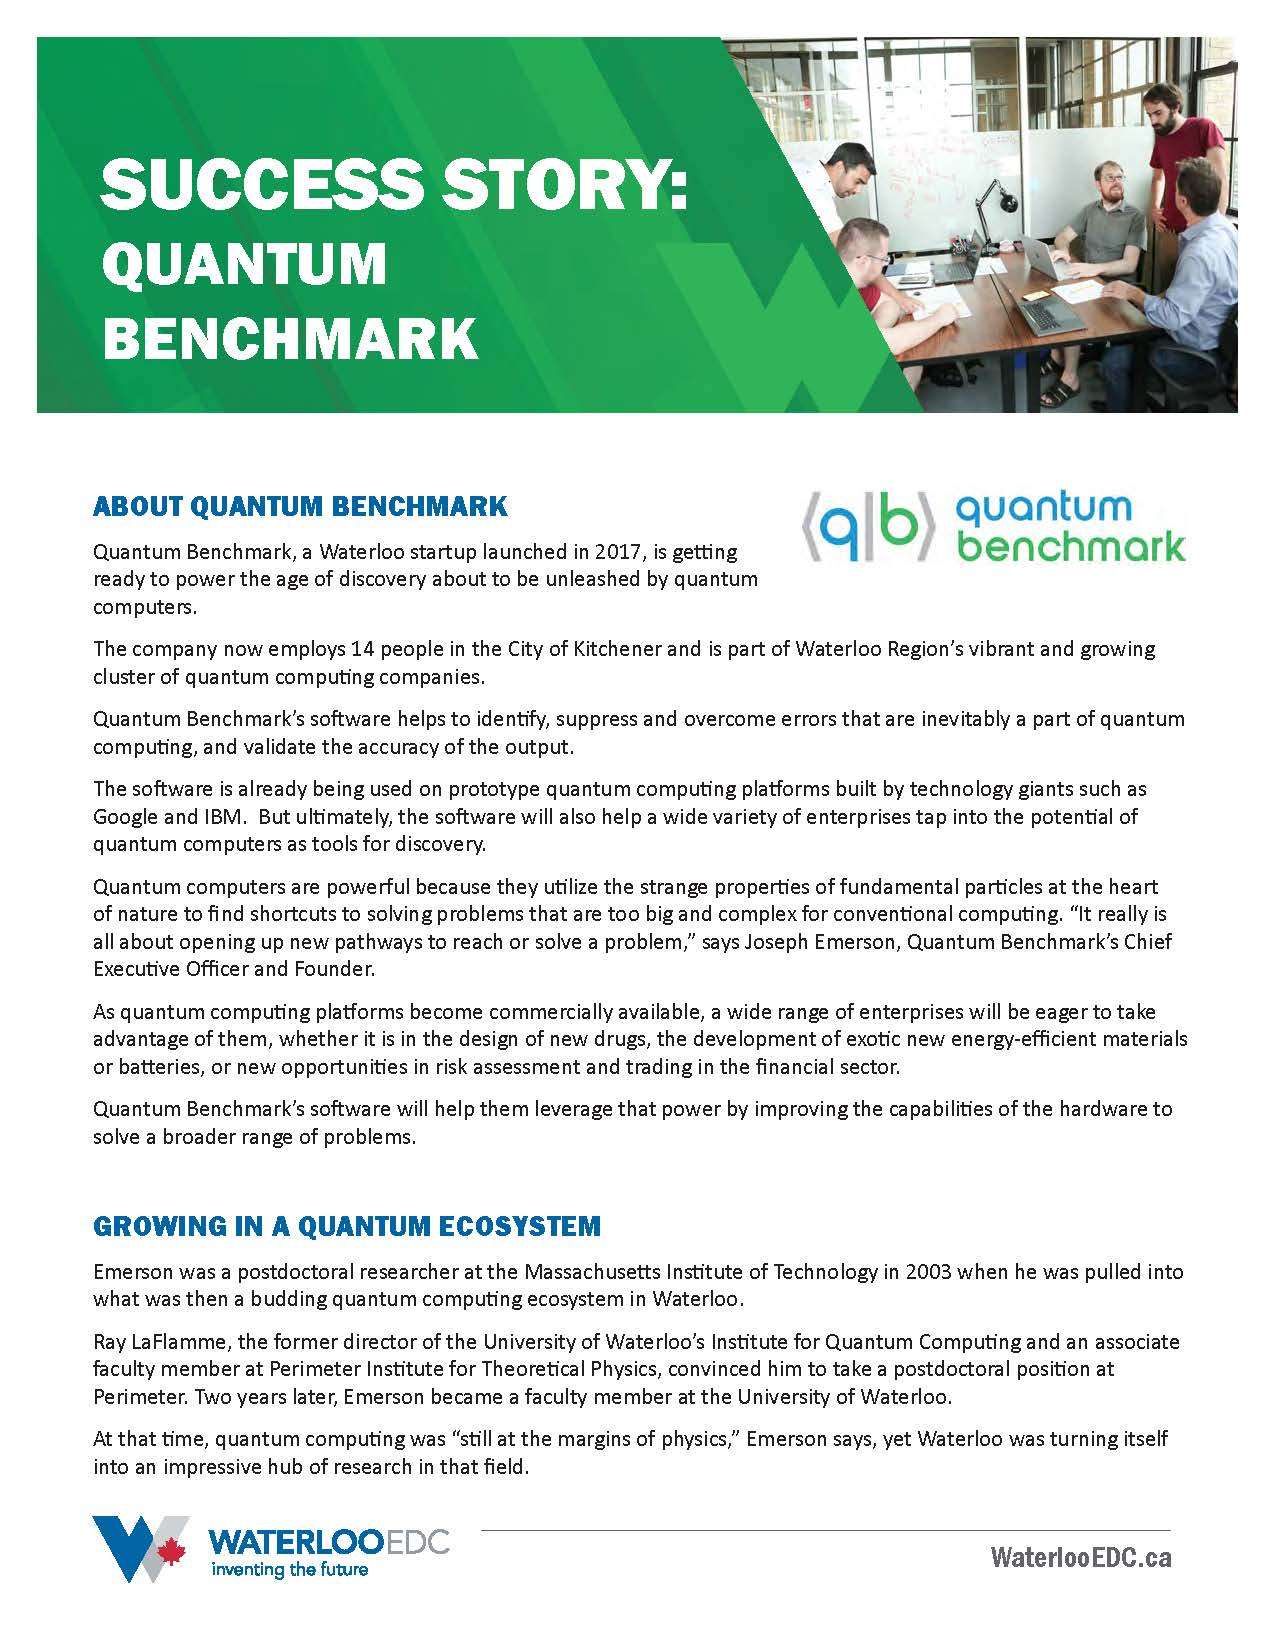 Success Story: Quantum Benchmark - Download PDF